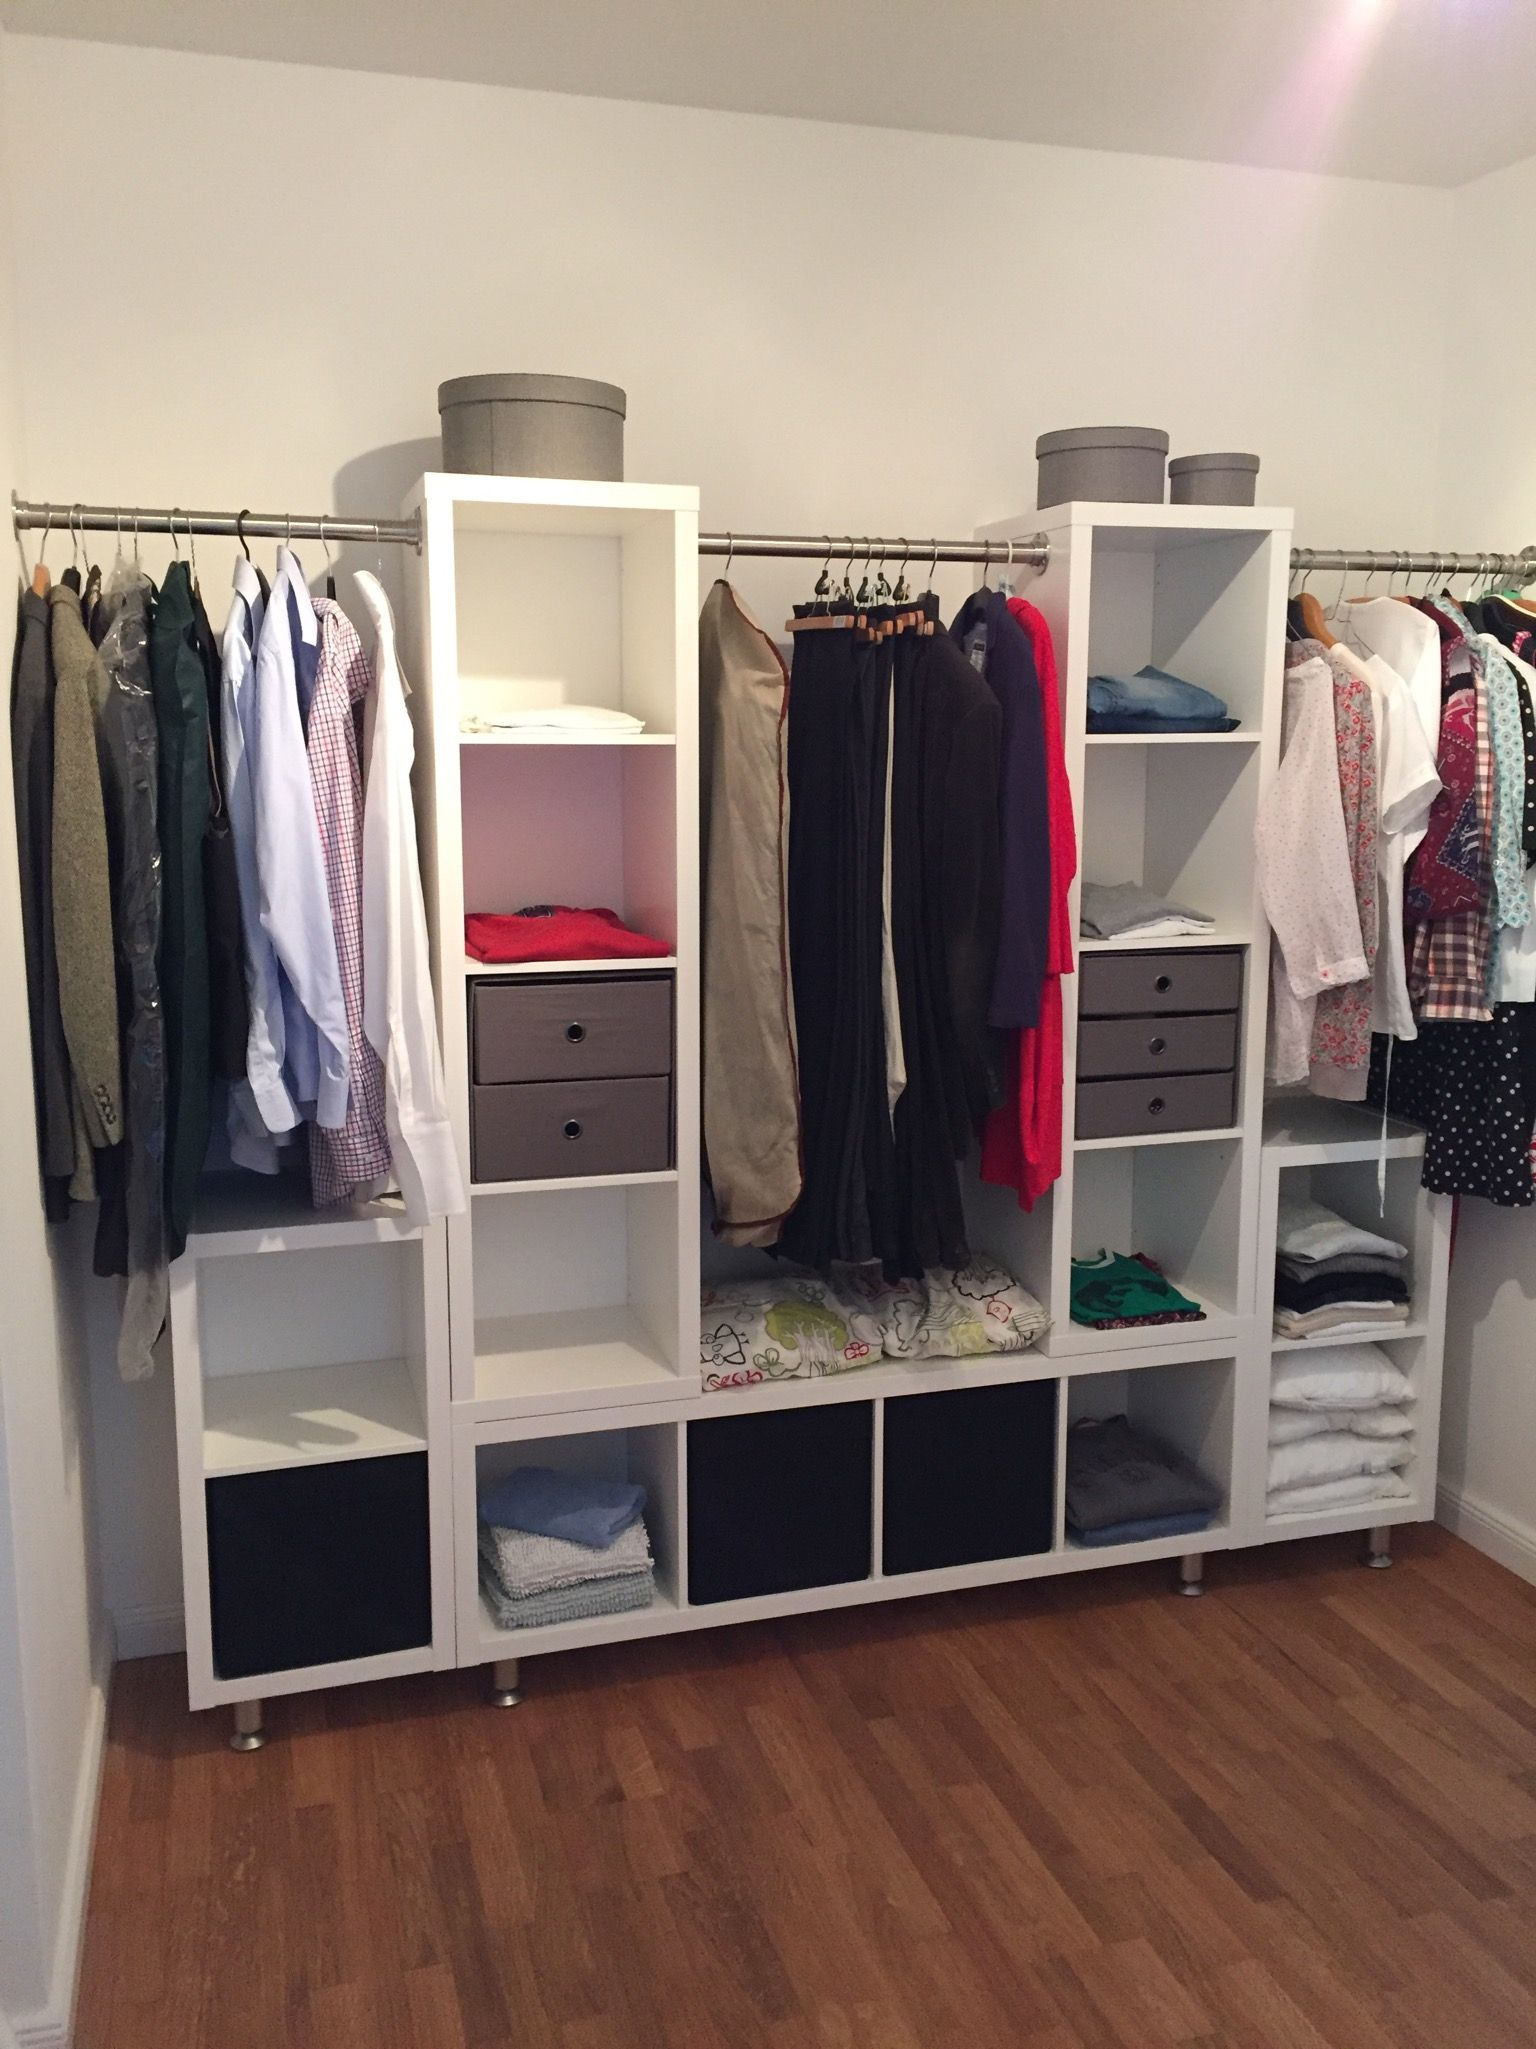 We Could Also Do Something Like This For The Spare Room If - Ikea Garderobe Schrank